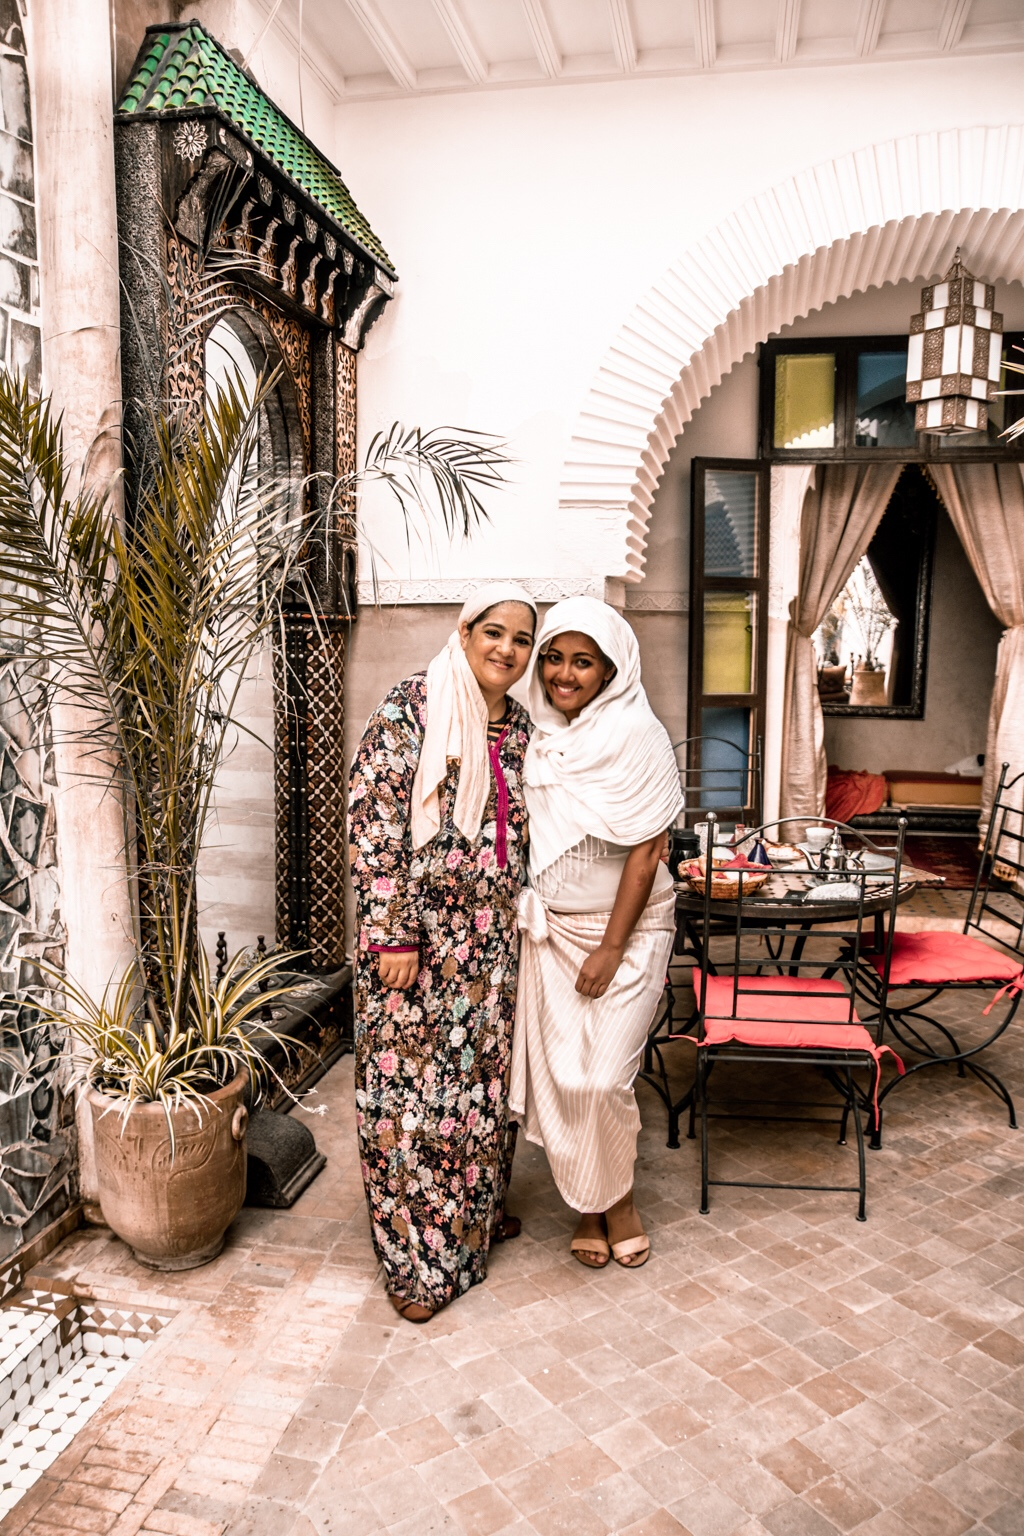 Paris Chic Style Best Riads In Marrakech Morocco Riad El Bellar 14